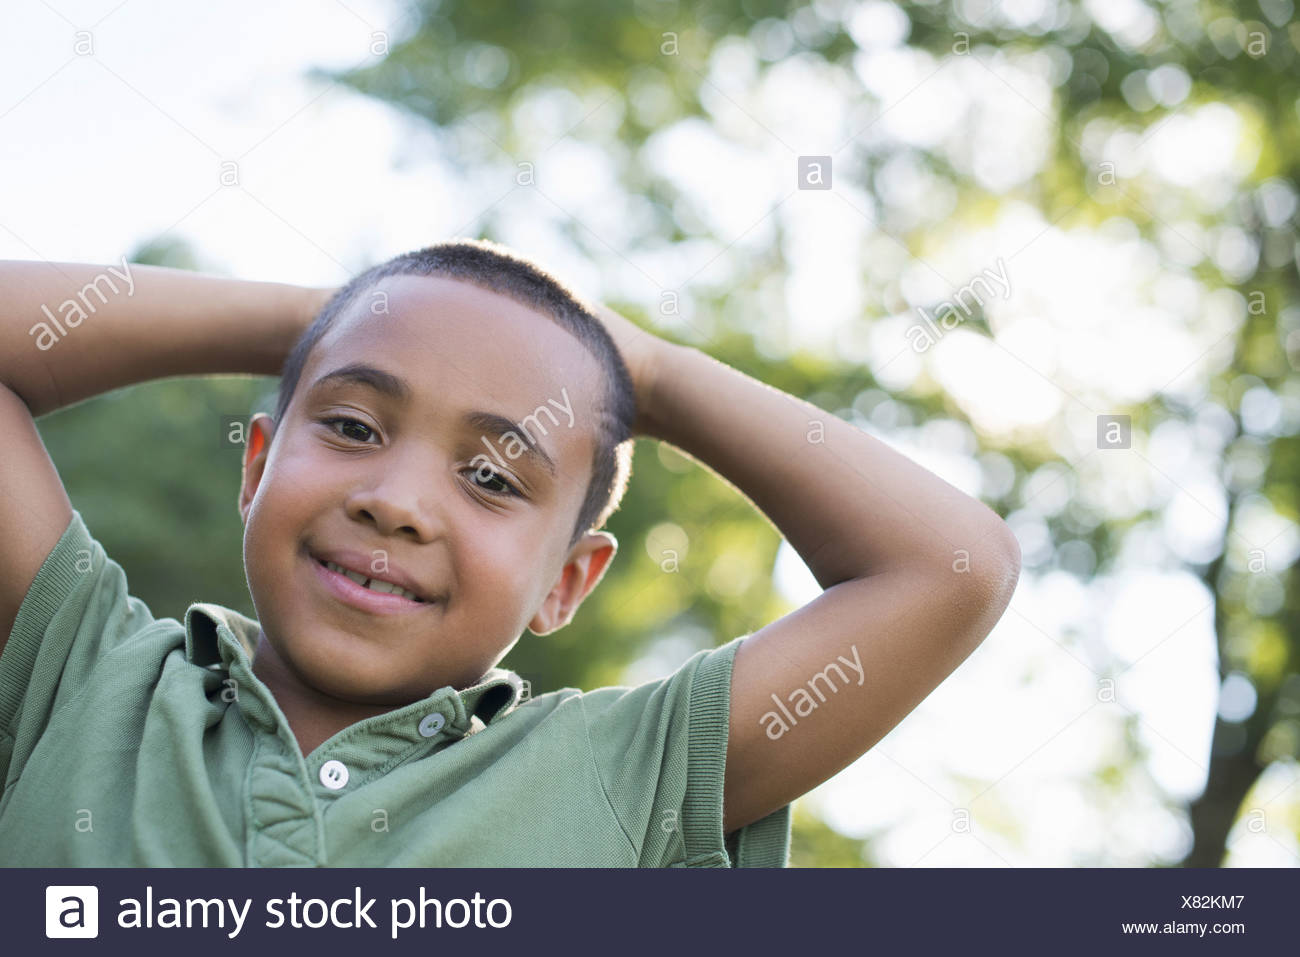 A young boy outdoors on a summer day - Stock Image